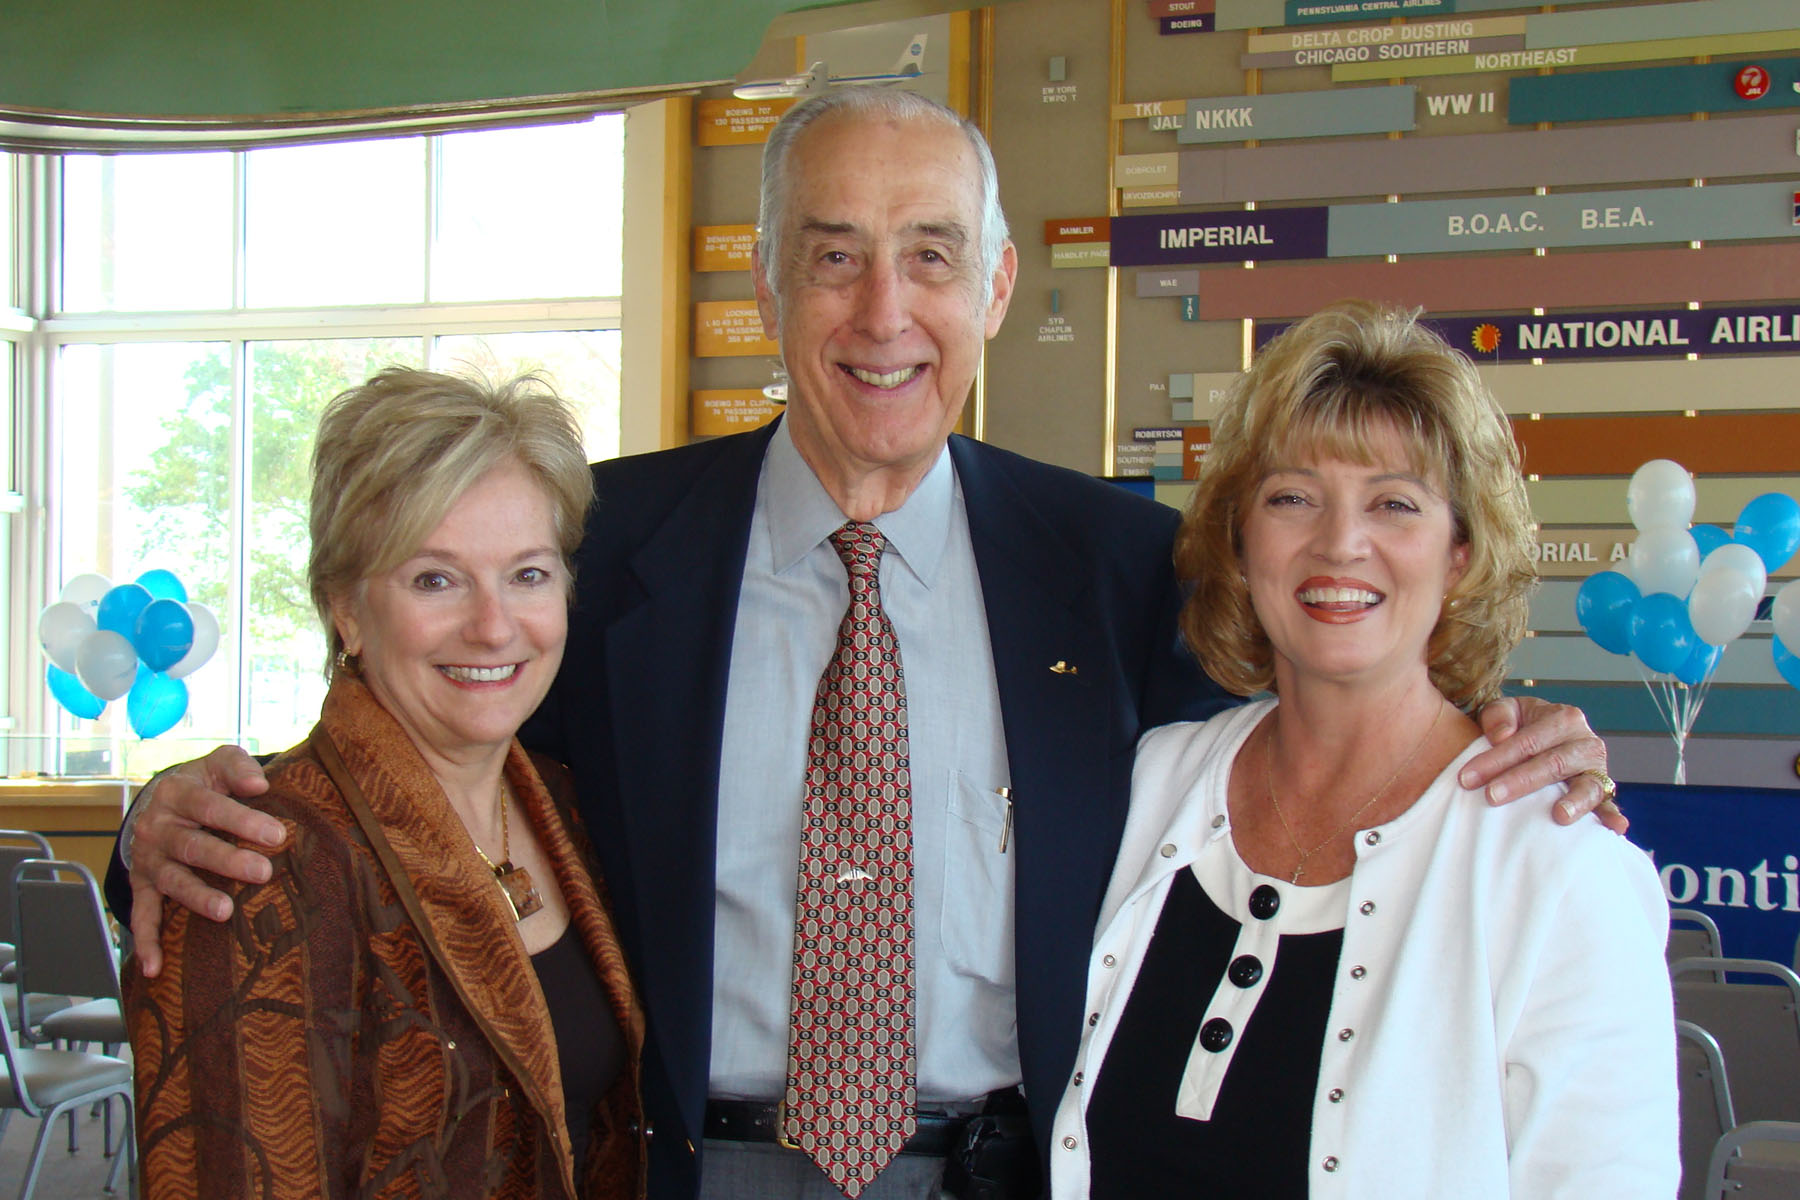 Bonnie Reitz, Dick Newton & Colleen Picard @ SPMOH, 27 Mar '08.jpg